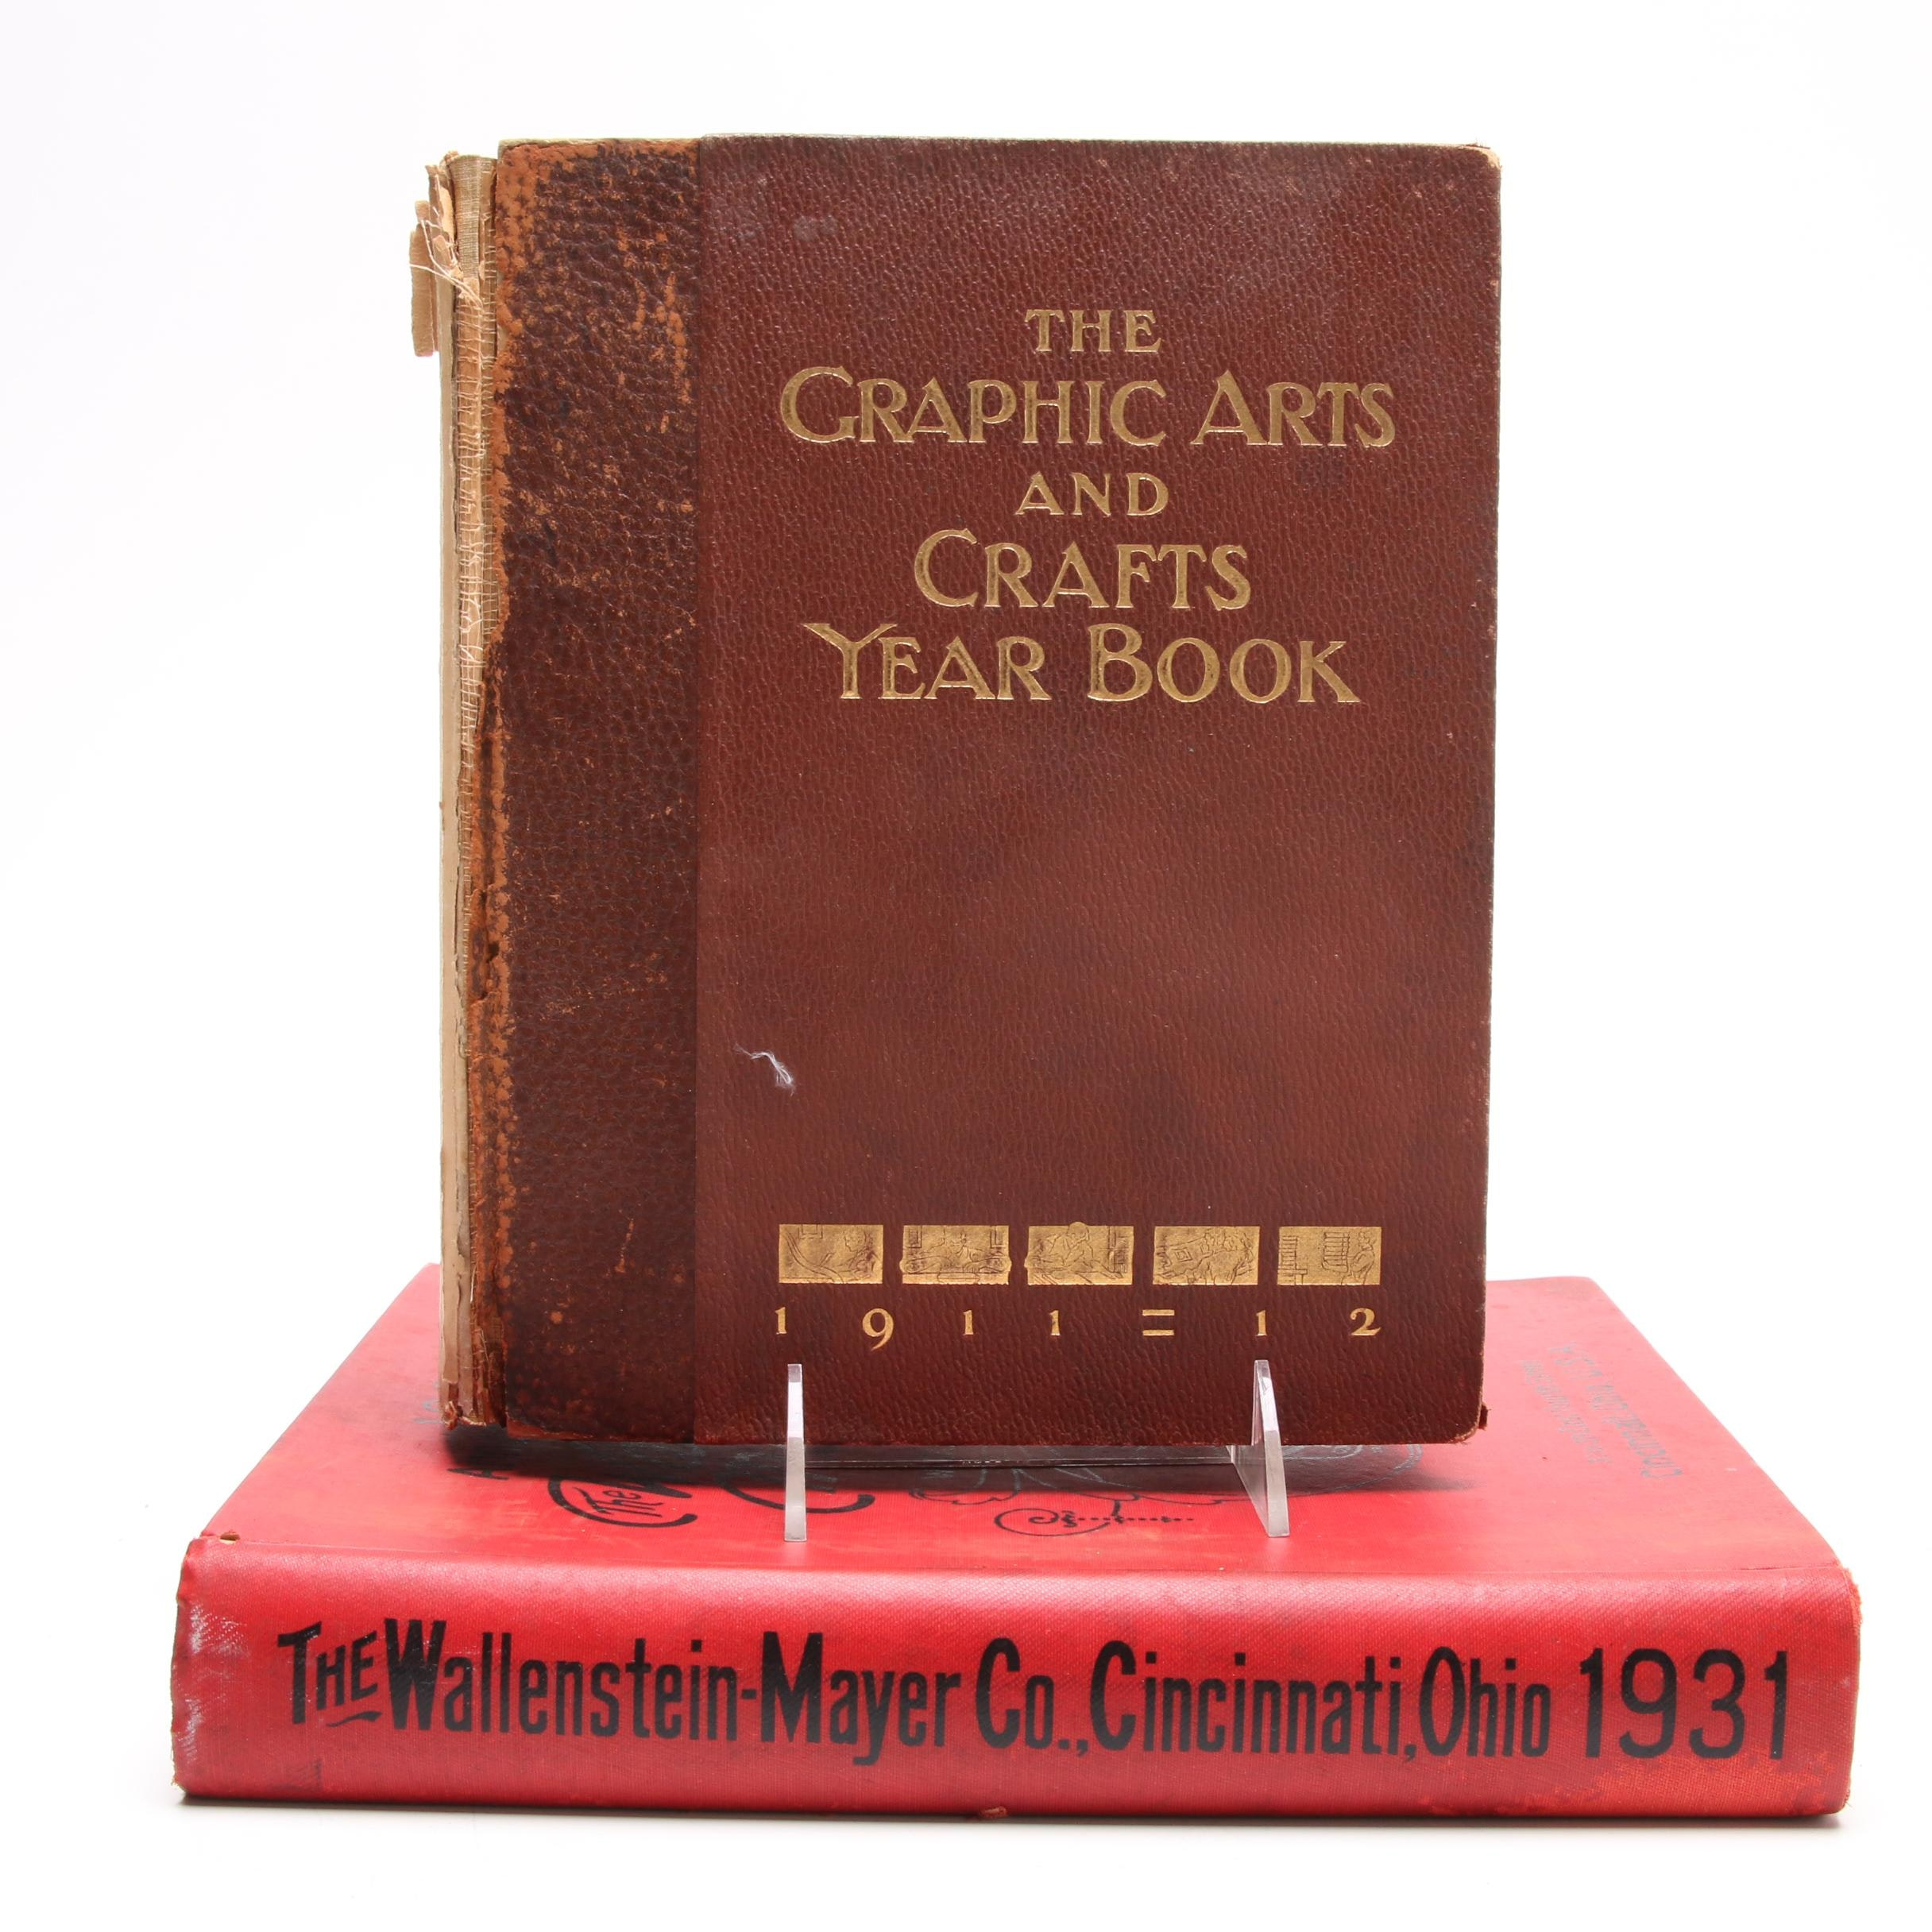 "1911-12 ""The Graphic Arts and Crafts Year Book"" and ""Wallenstein Mayer"" Catalog"